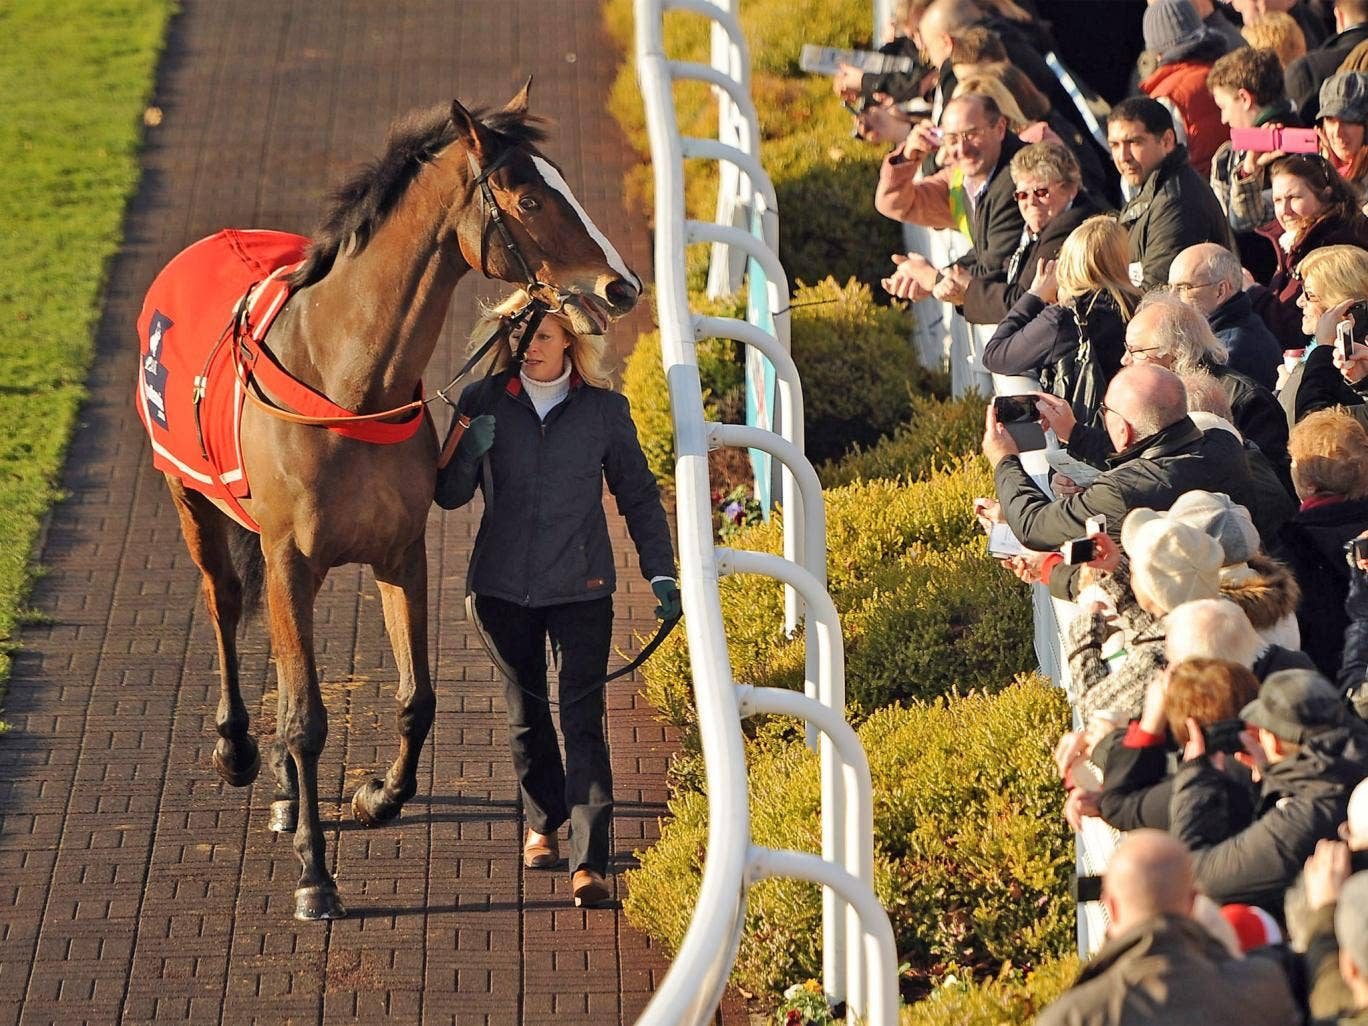 Kauto Star parades at Sandown last Saturday. The atmosphere at Kempton on Boxing Day may be strained